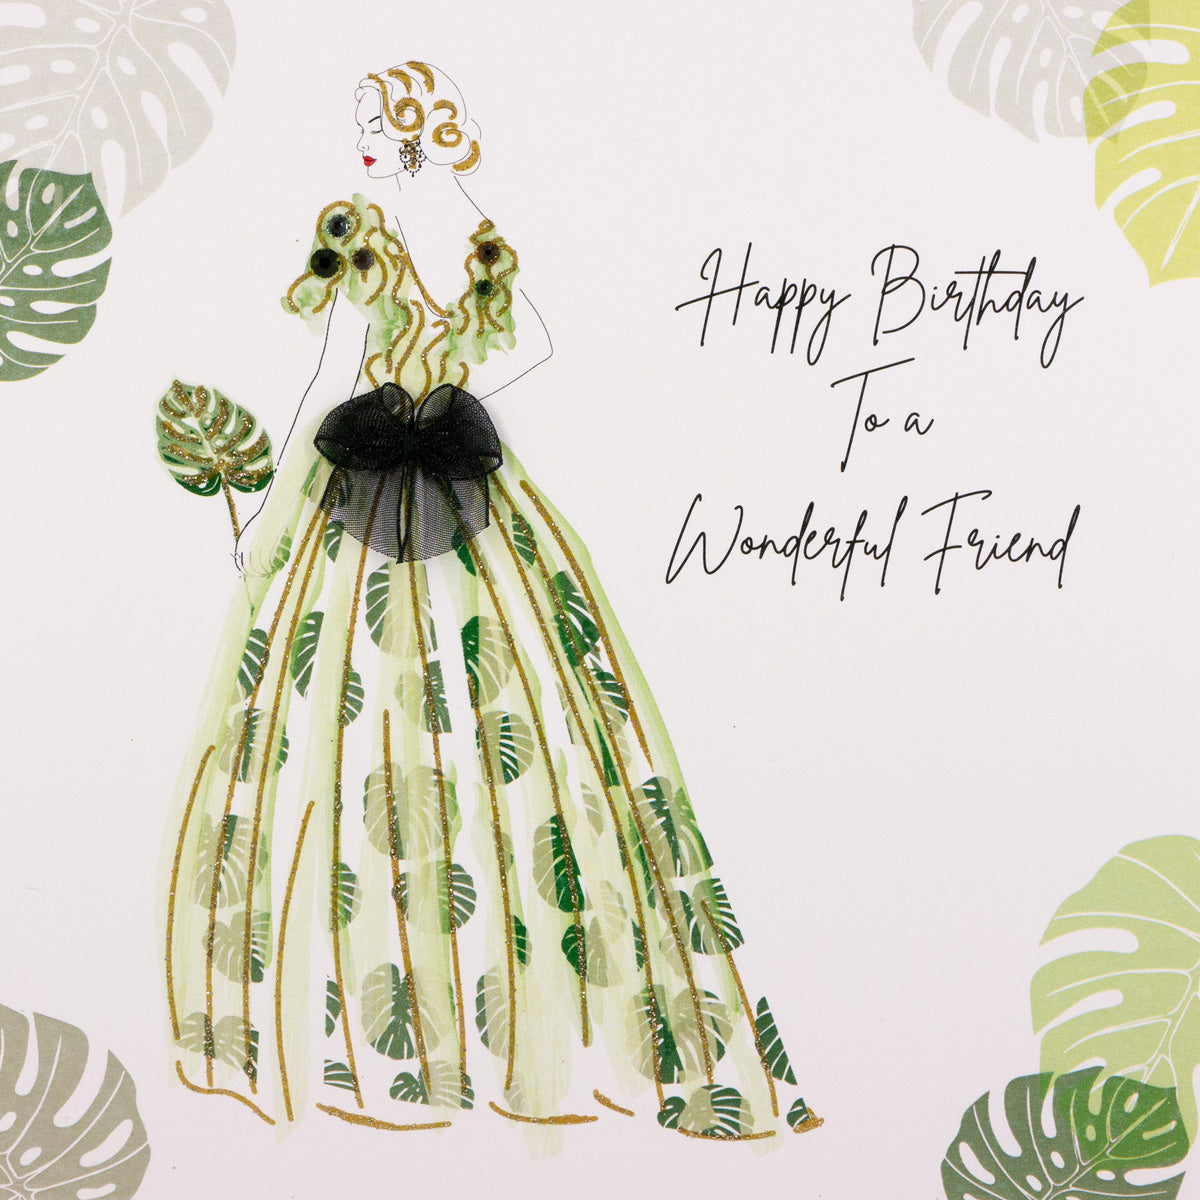 Five Dollar Shake Wonderful Friend Happy Birthday Card